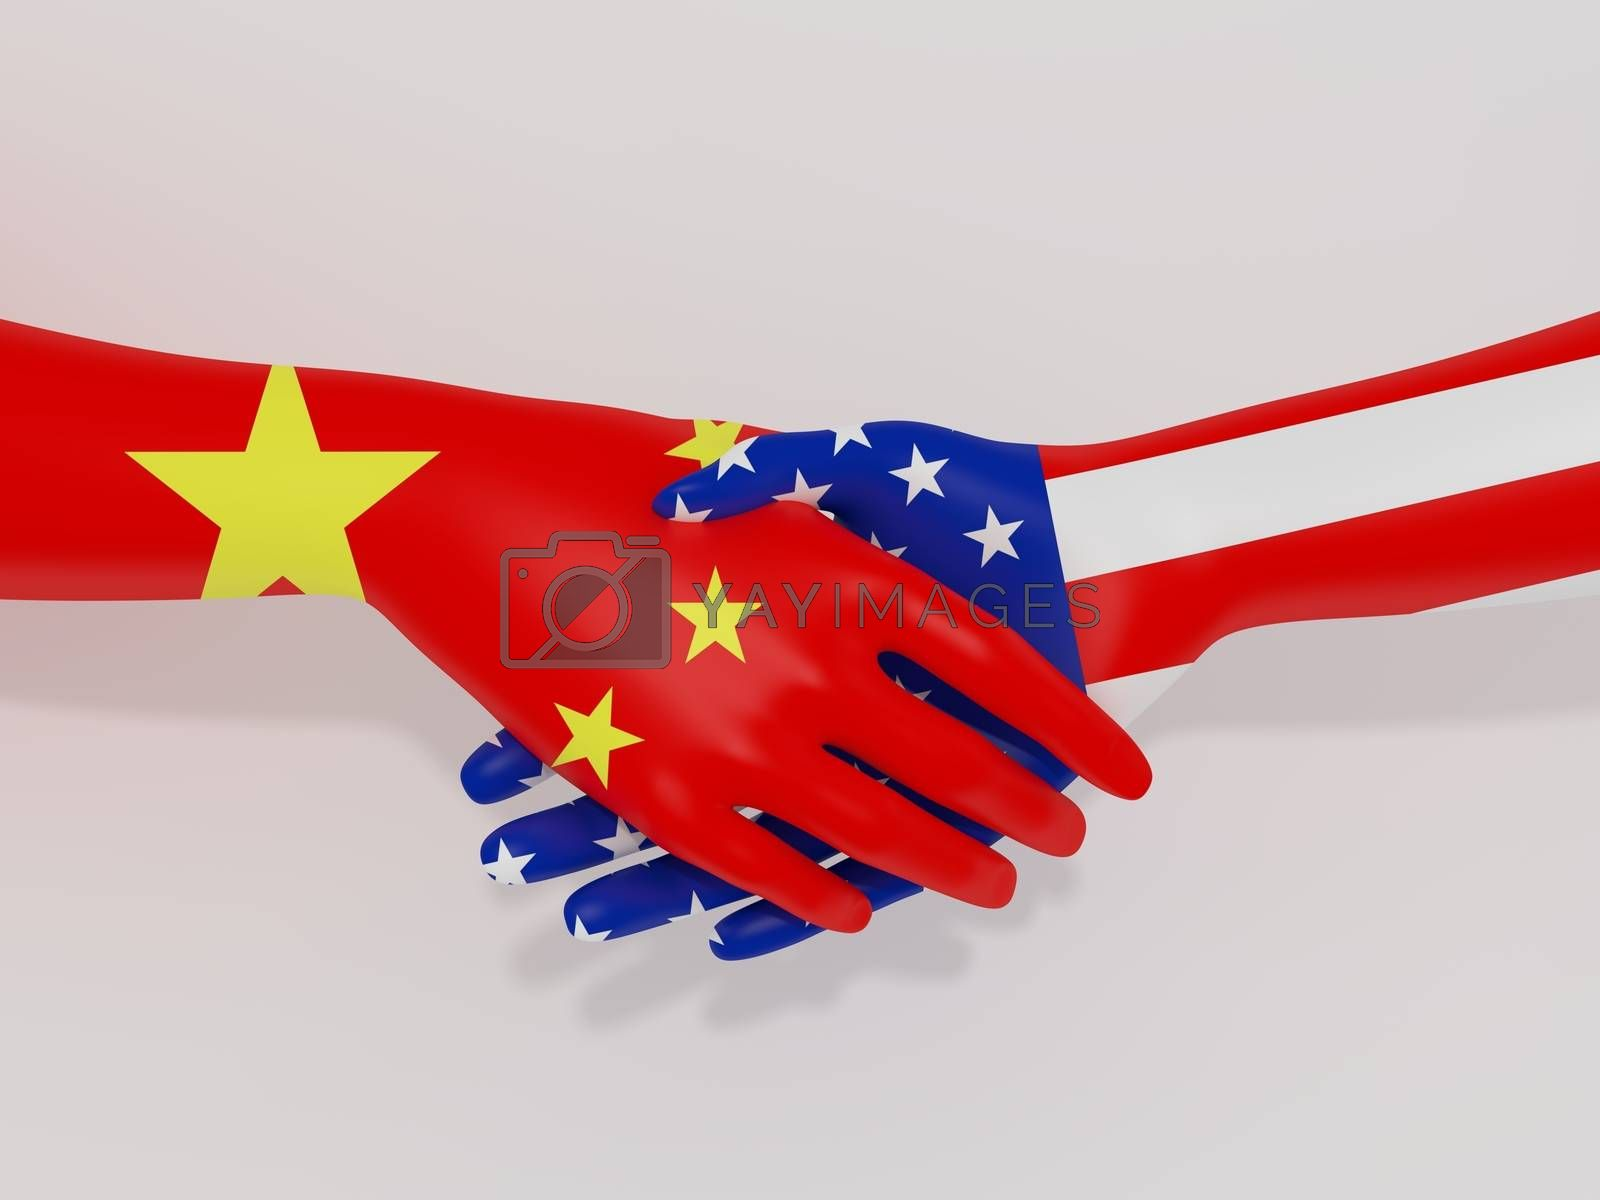 Illustration of shaking hands with China and America flags as textures